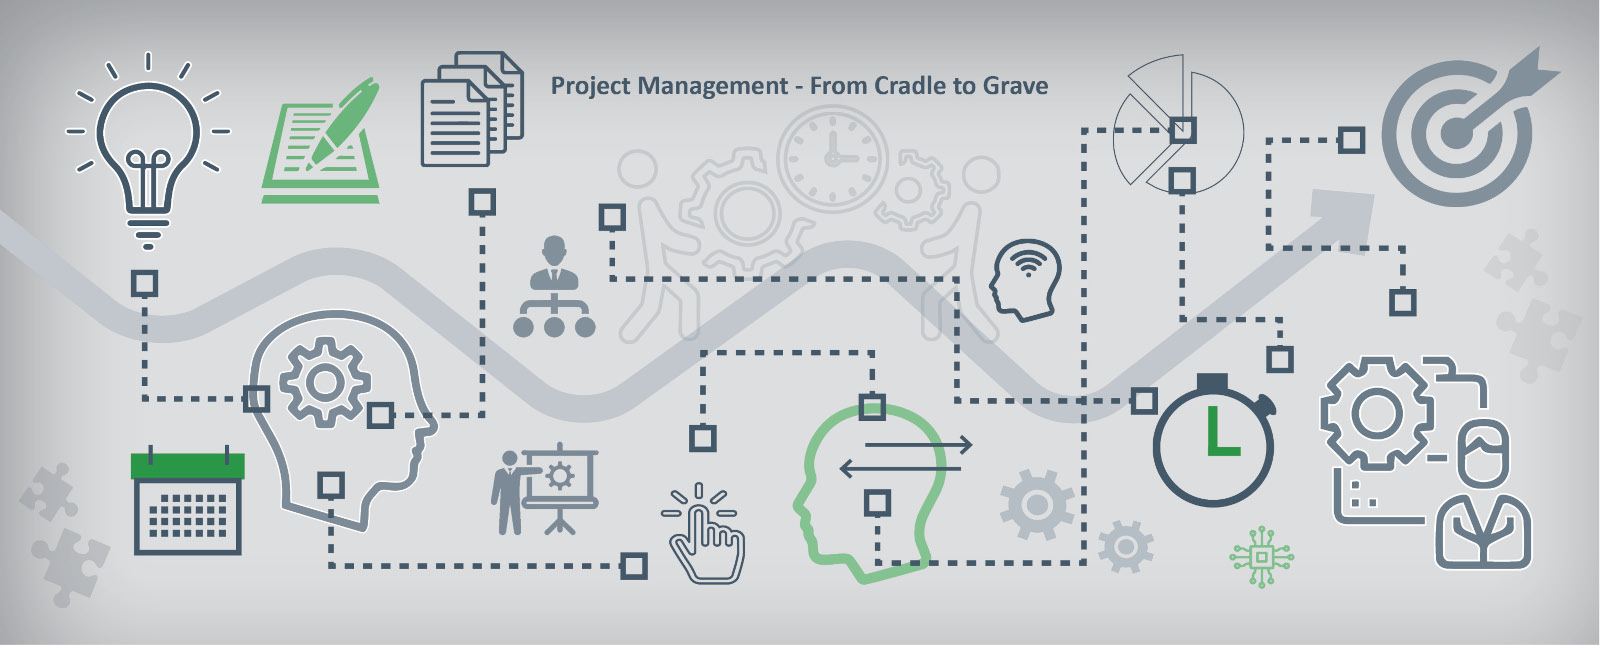 Project Management Services infographic